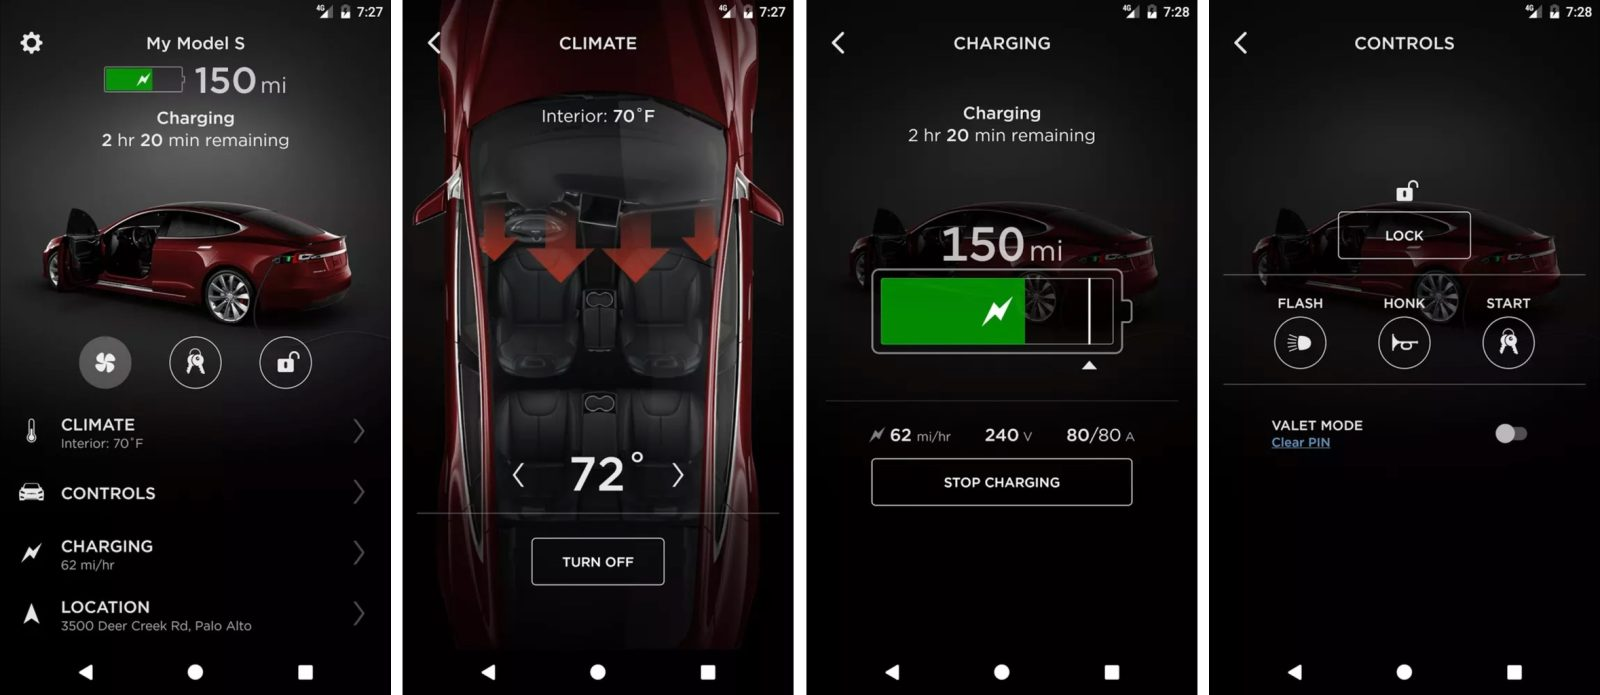 Tesla app disappears from the Google Play Store, will be back soon